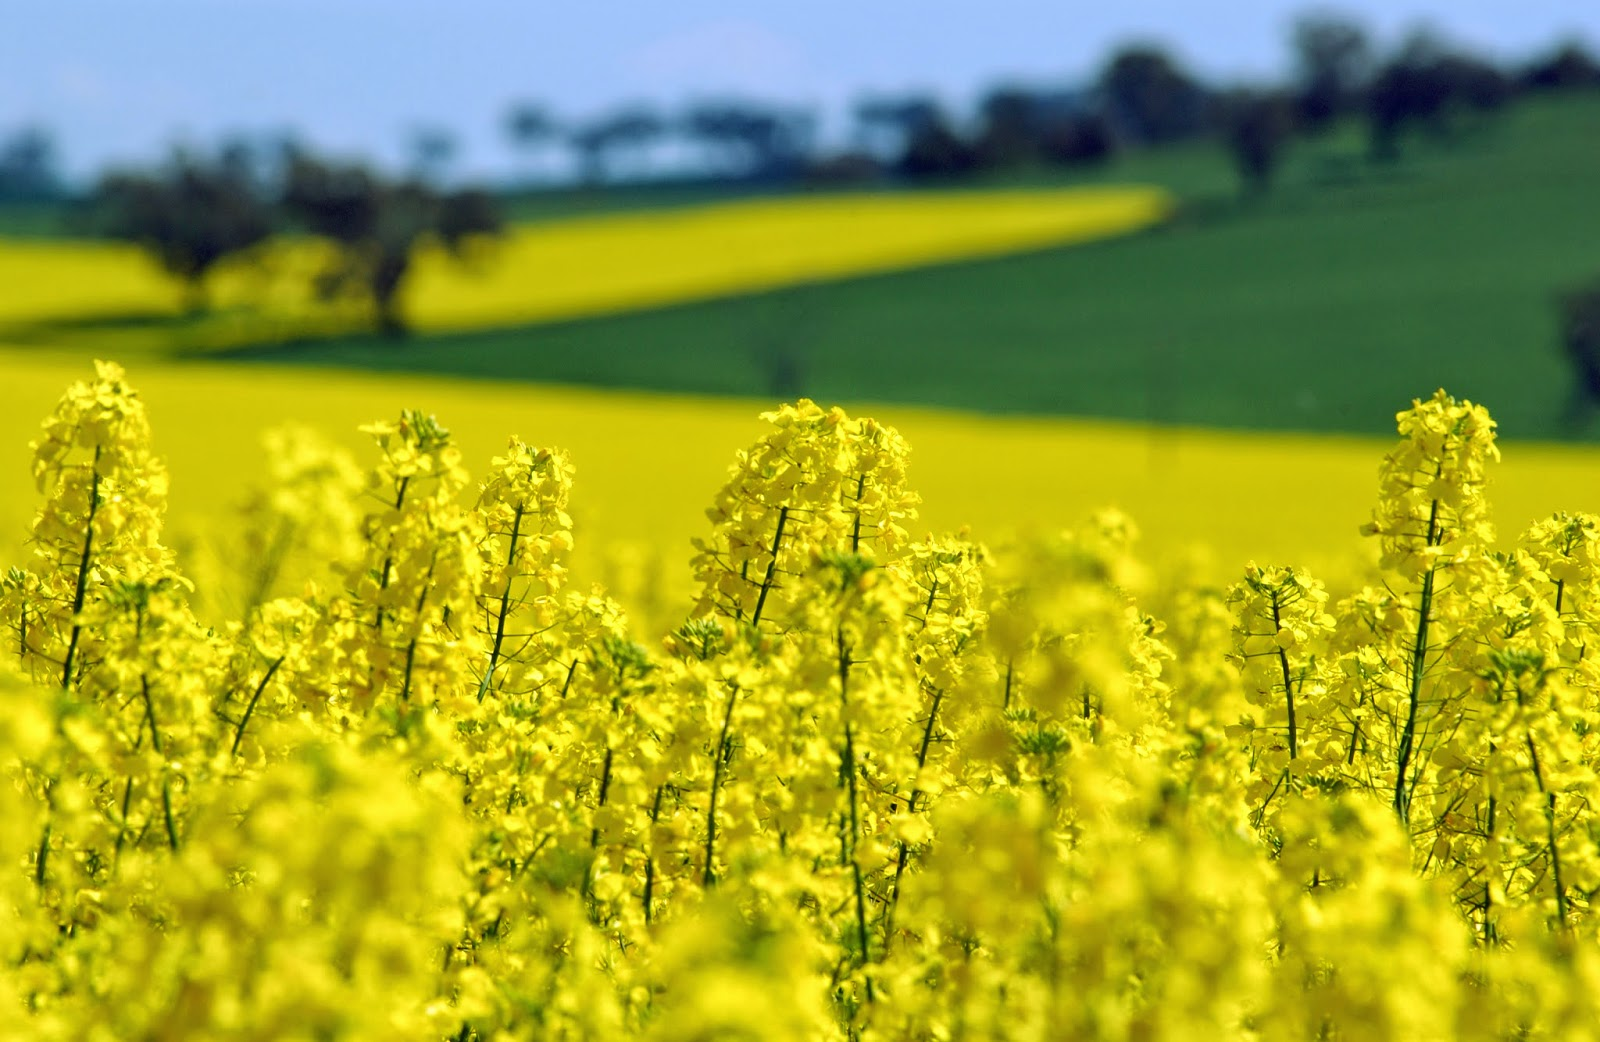 http://www.scienceimage.csiro.au/image/3978/canola-crop-with-wheat-crop-in-background/